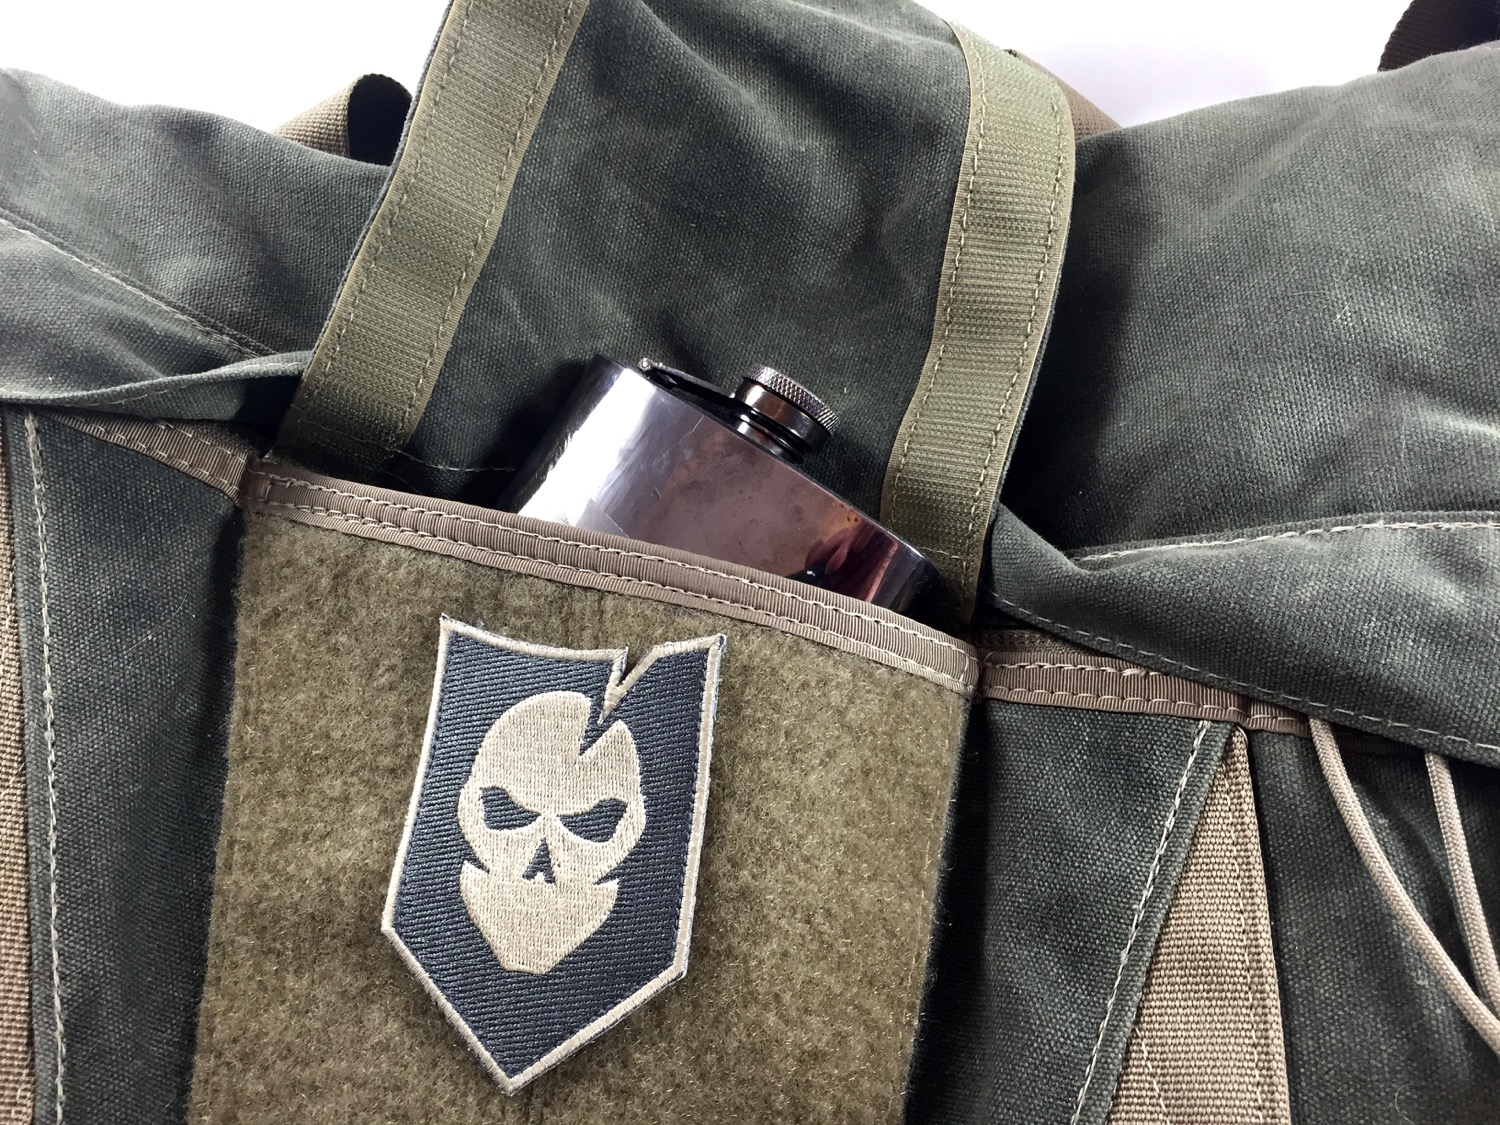 Hidden compartment runs the full size of the messenger bag lid.